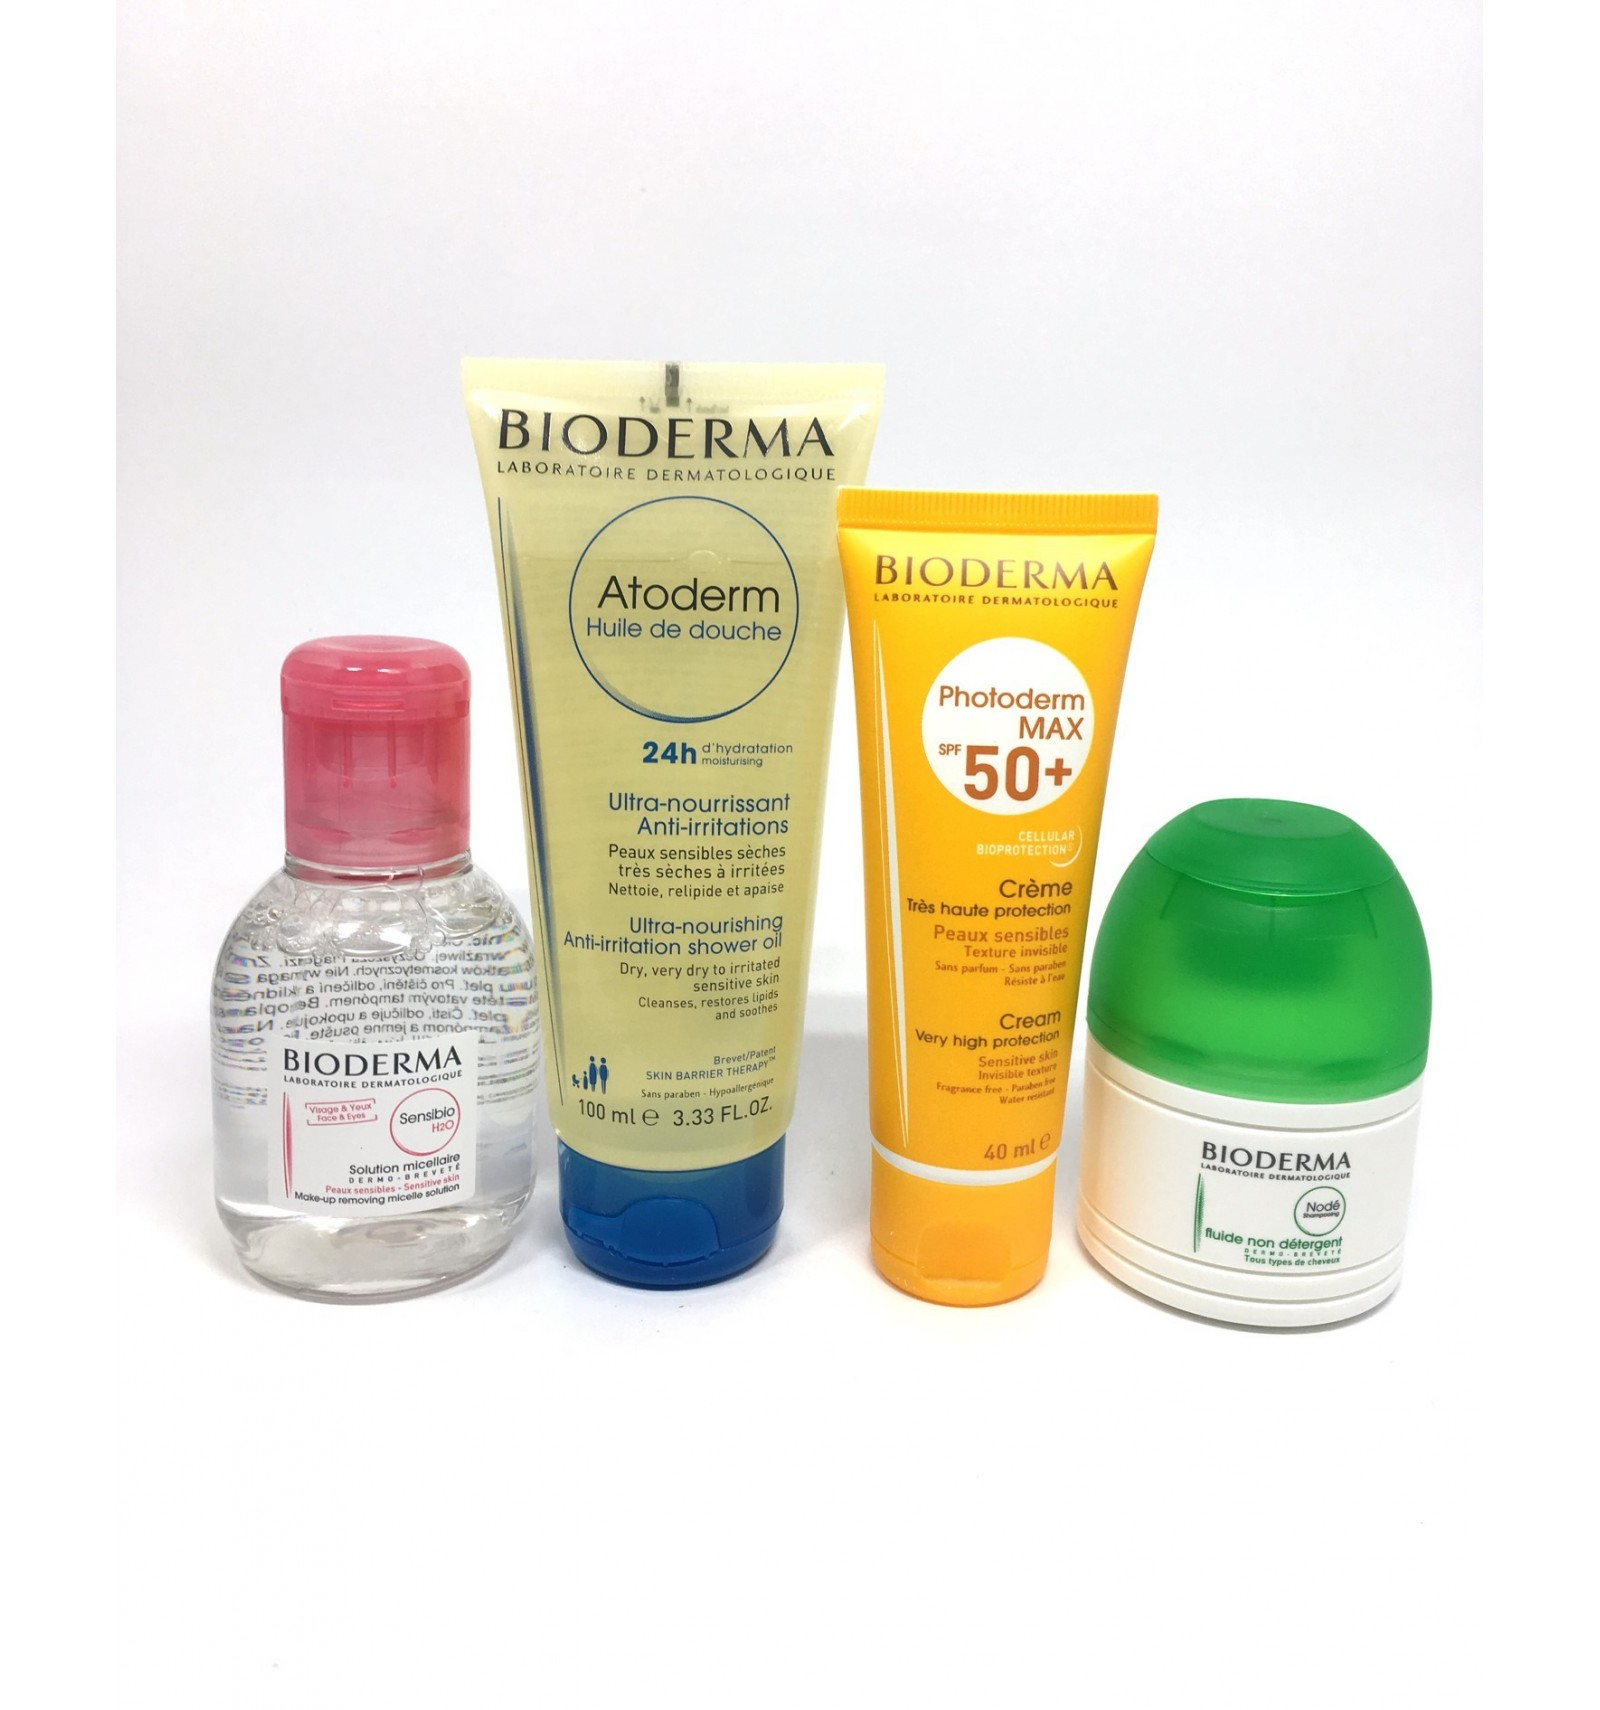 1f45ee6c247c2 Bioderma Travel Kit - Dermatologie.sk